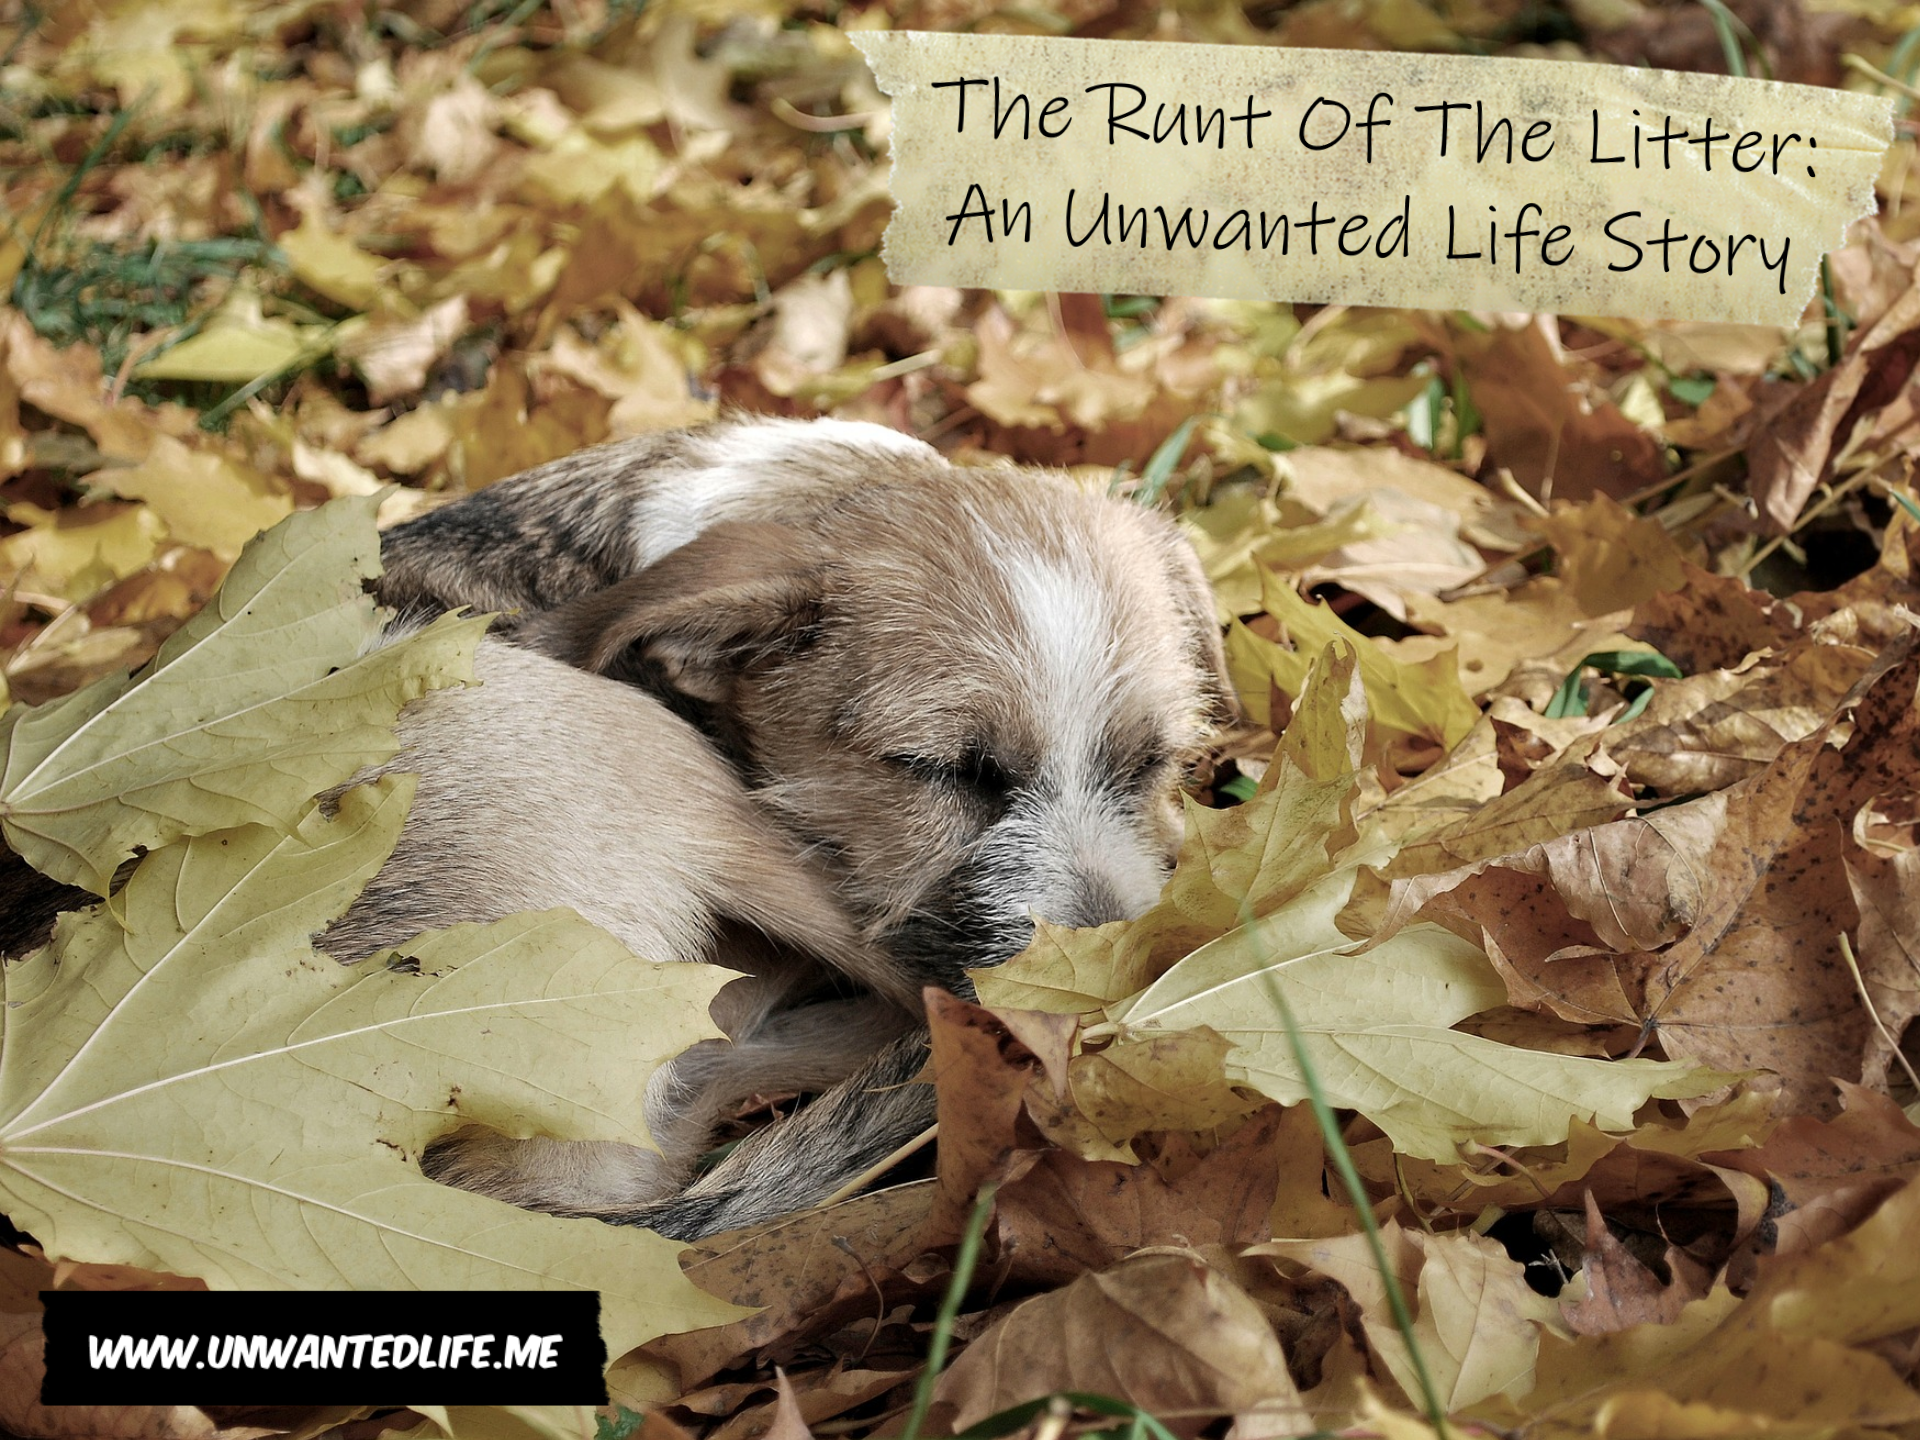 A photo of a puppy sleeping among the leaves outside to represent the runt of the litter